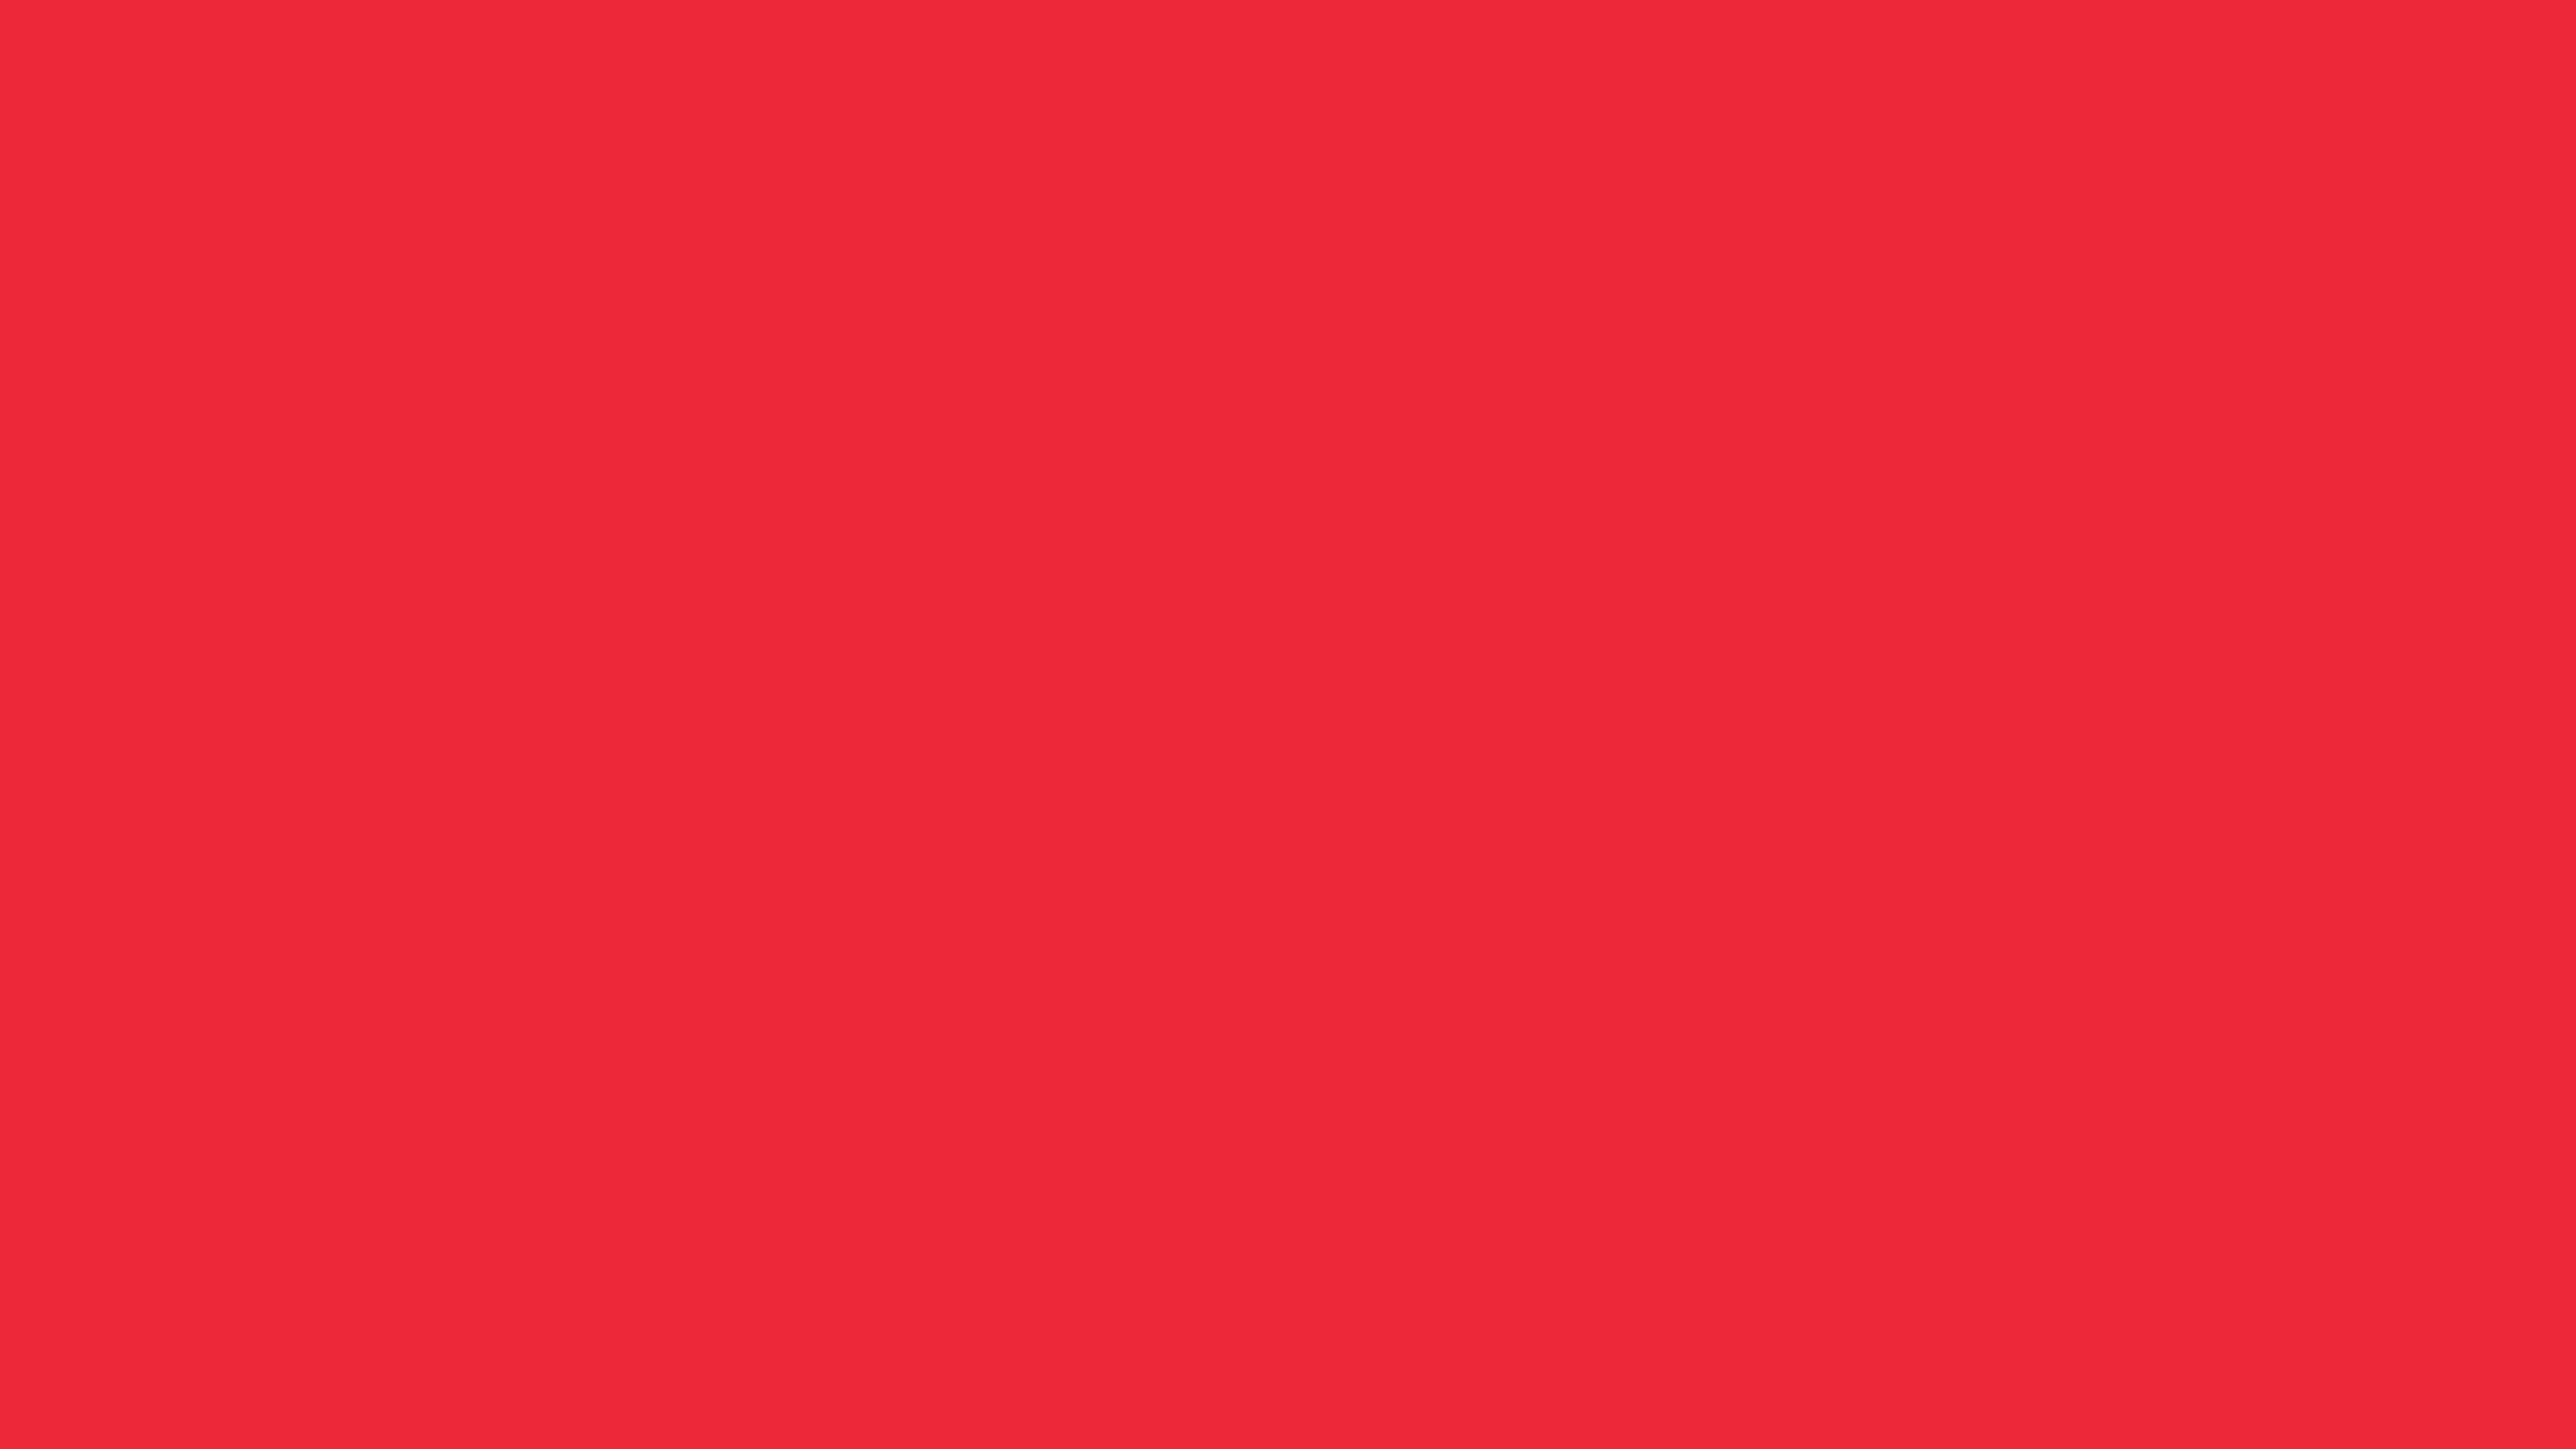 5120x2880 Imperial Red Solid Color Background